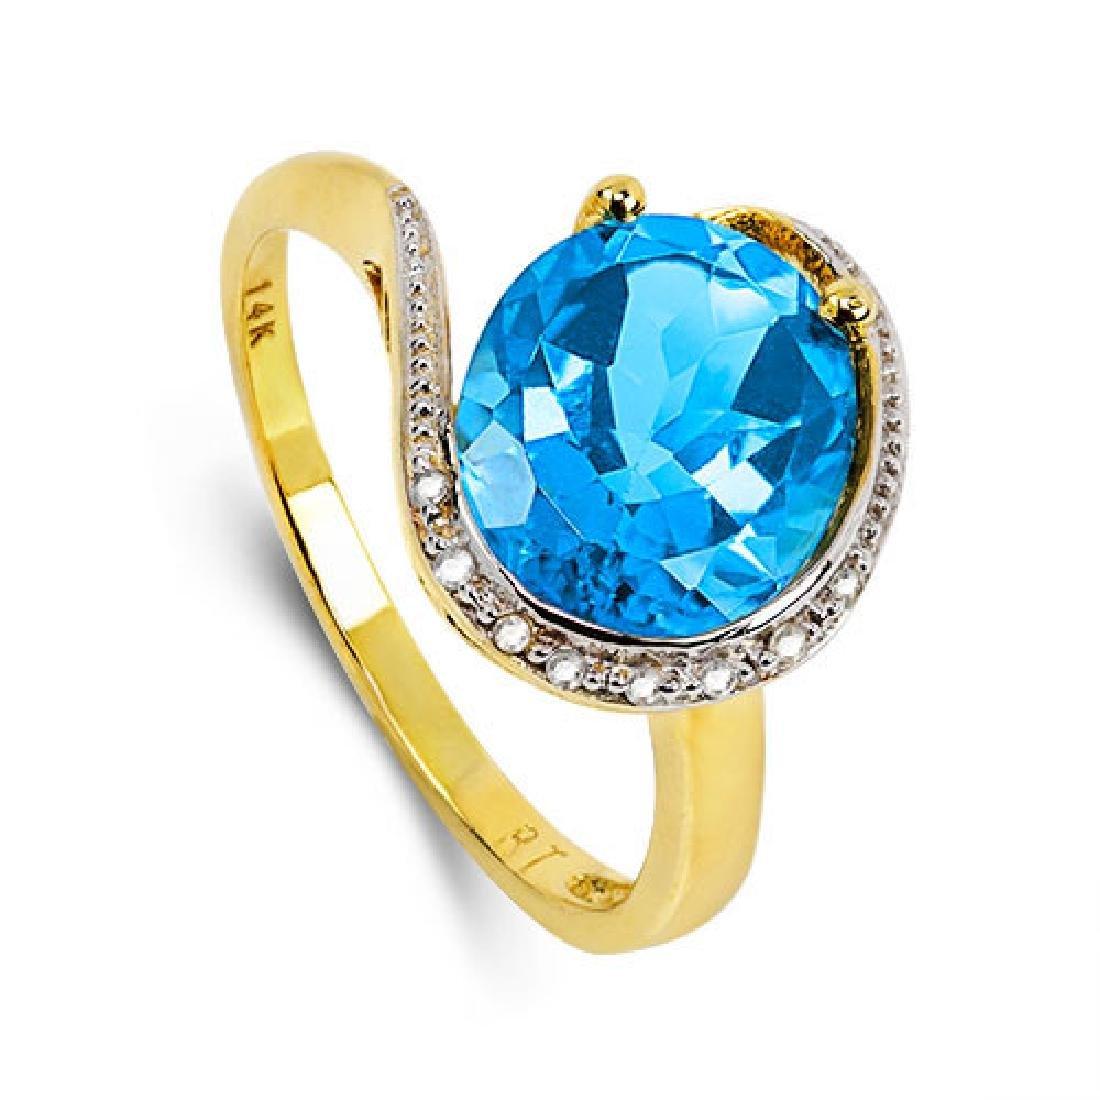 14K WHITE GOLD LONDON BLUE TOPAZ 4.4CT RING WITH